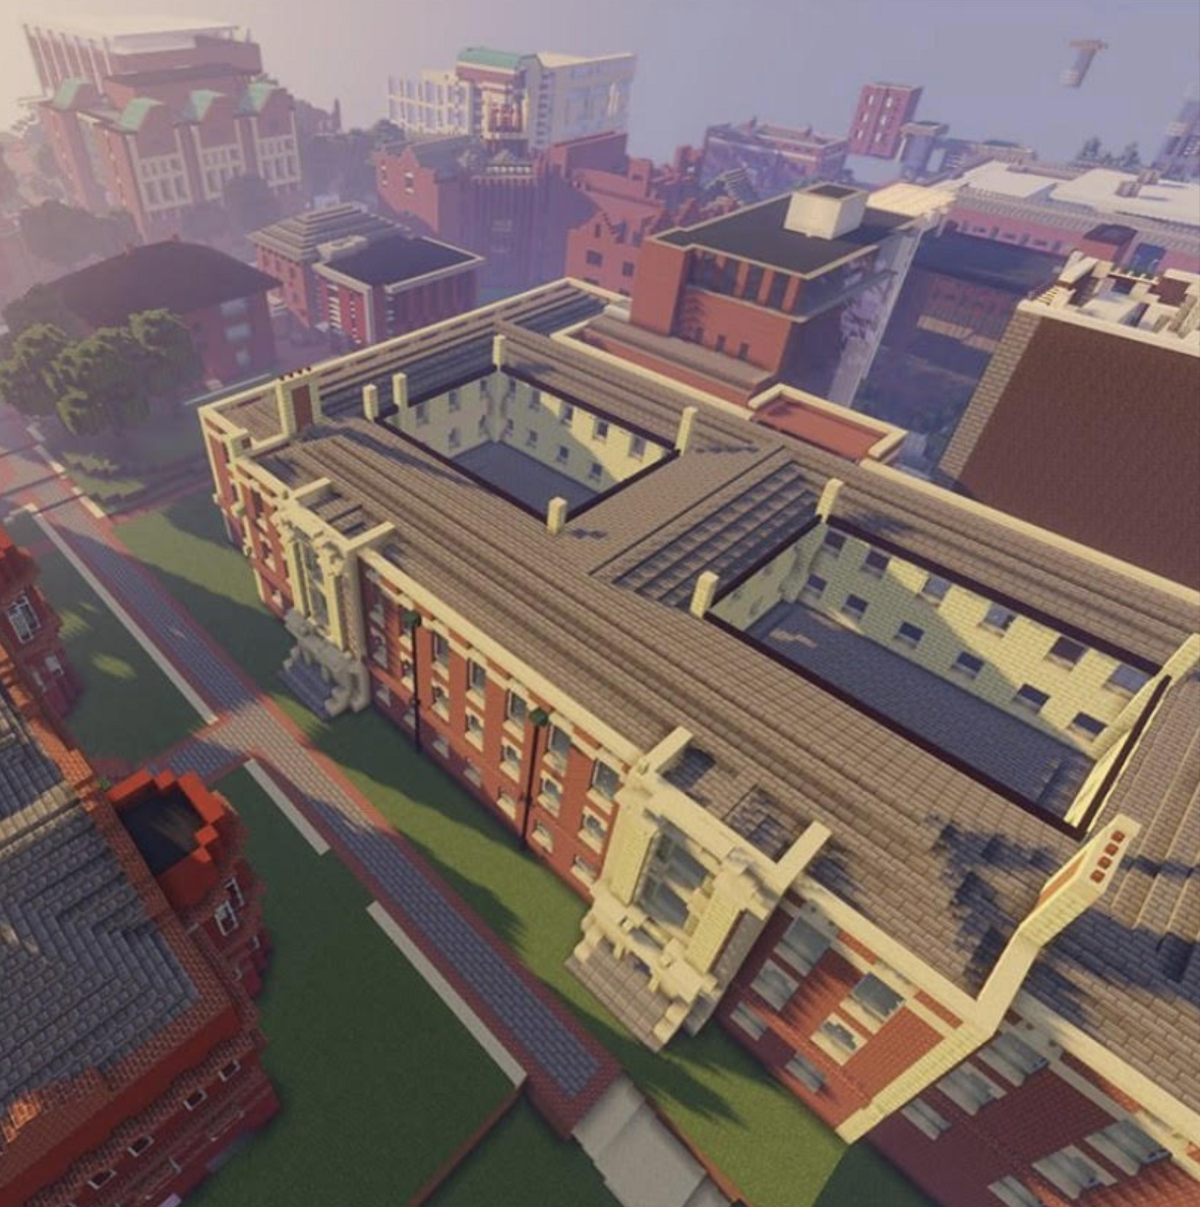 An aerial view of the engineering campus built in minecraft.